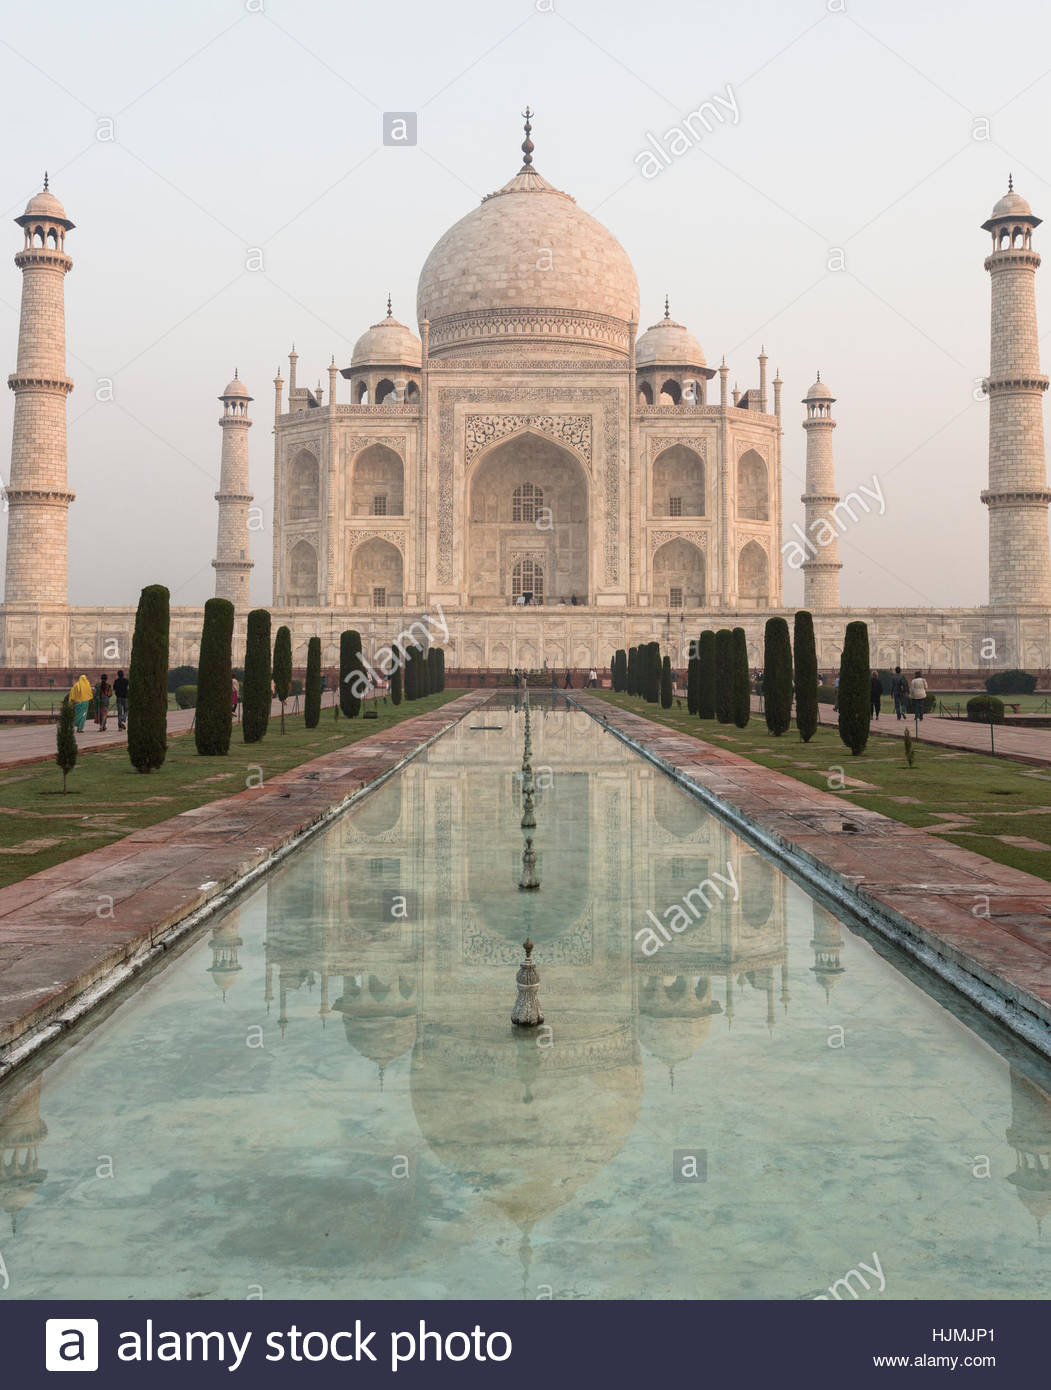 The symmetry of the Taj Mahal is perfectly replicated in the adjoining reflecting pool. - Stock Image